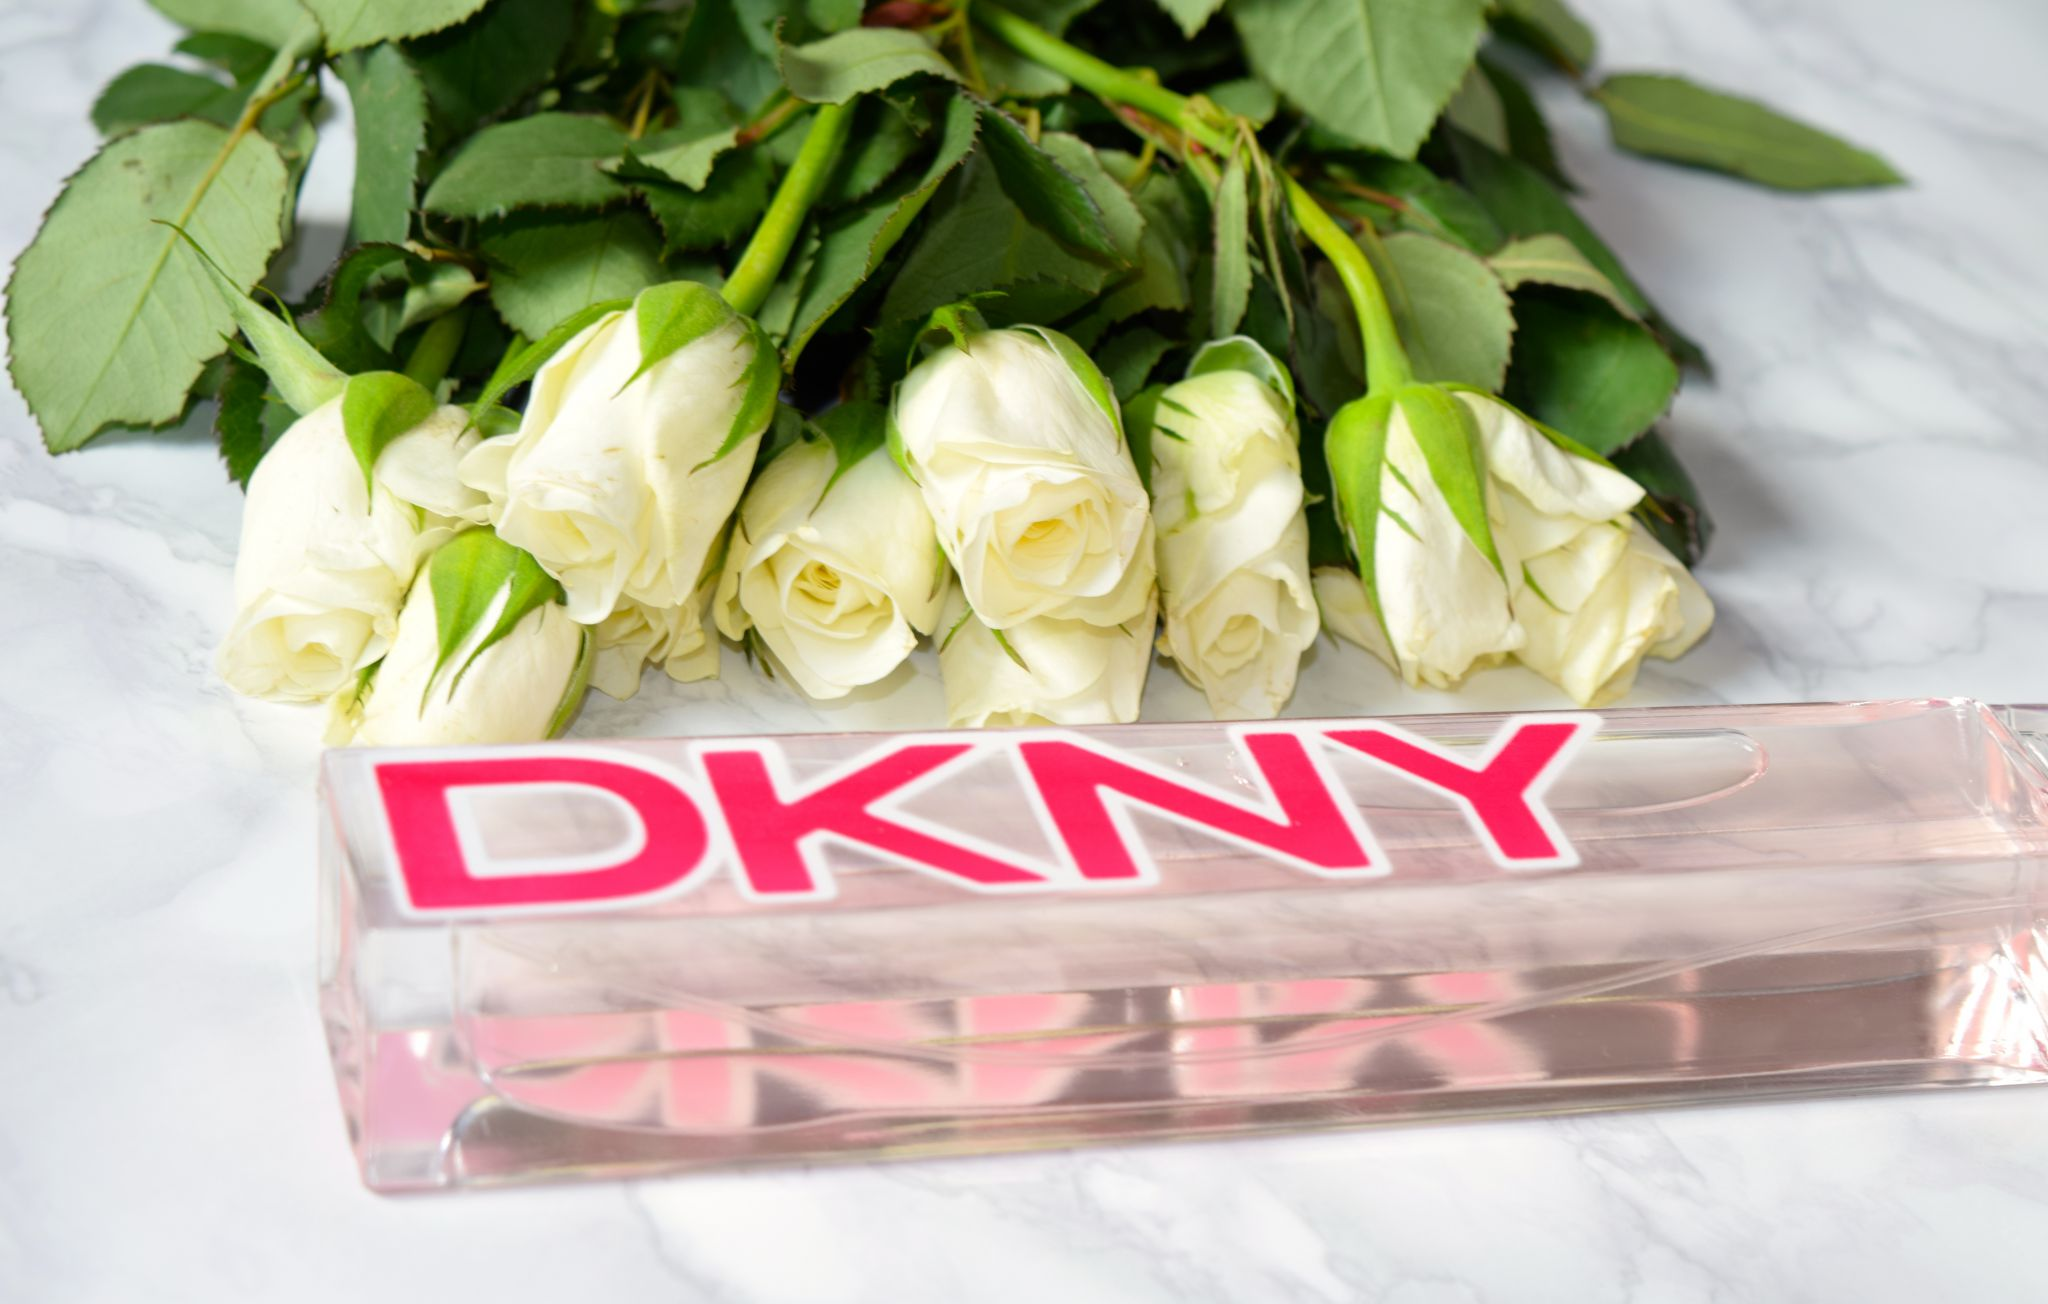 DKNY Women Limited Edition 2